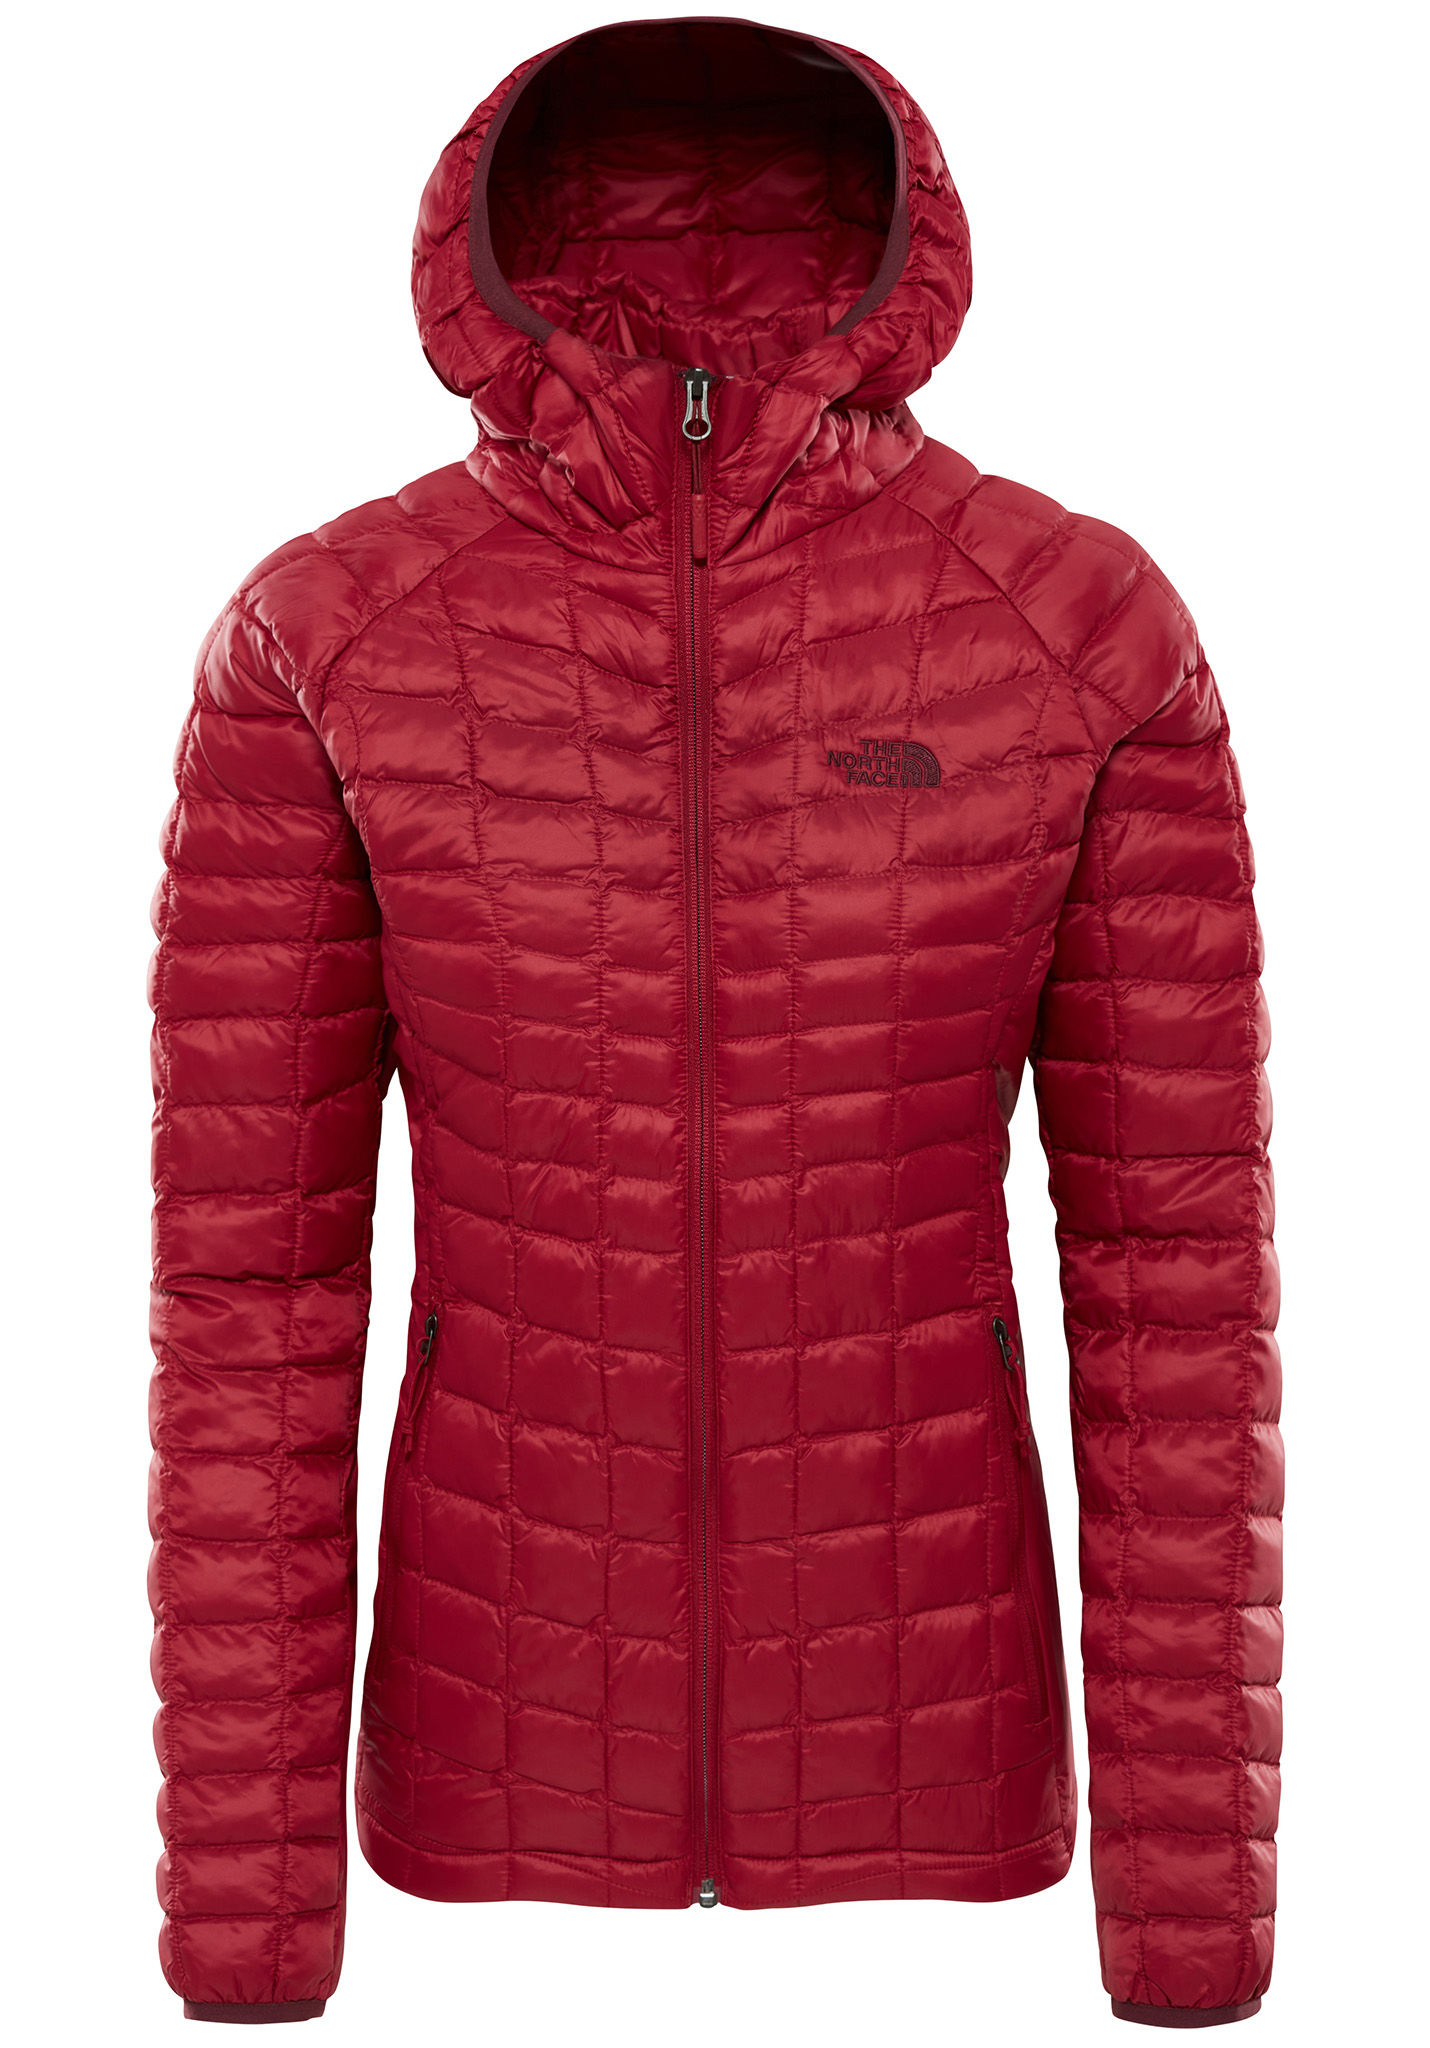 32d352eaf THE NORTH FACE Thermoball Sport - Outdoor Jacket for Women - Red